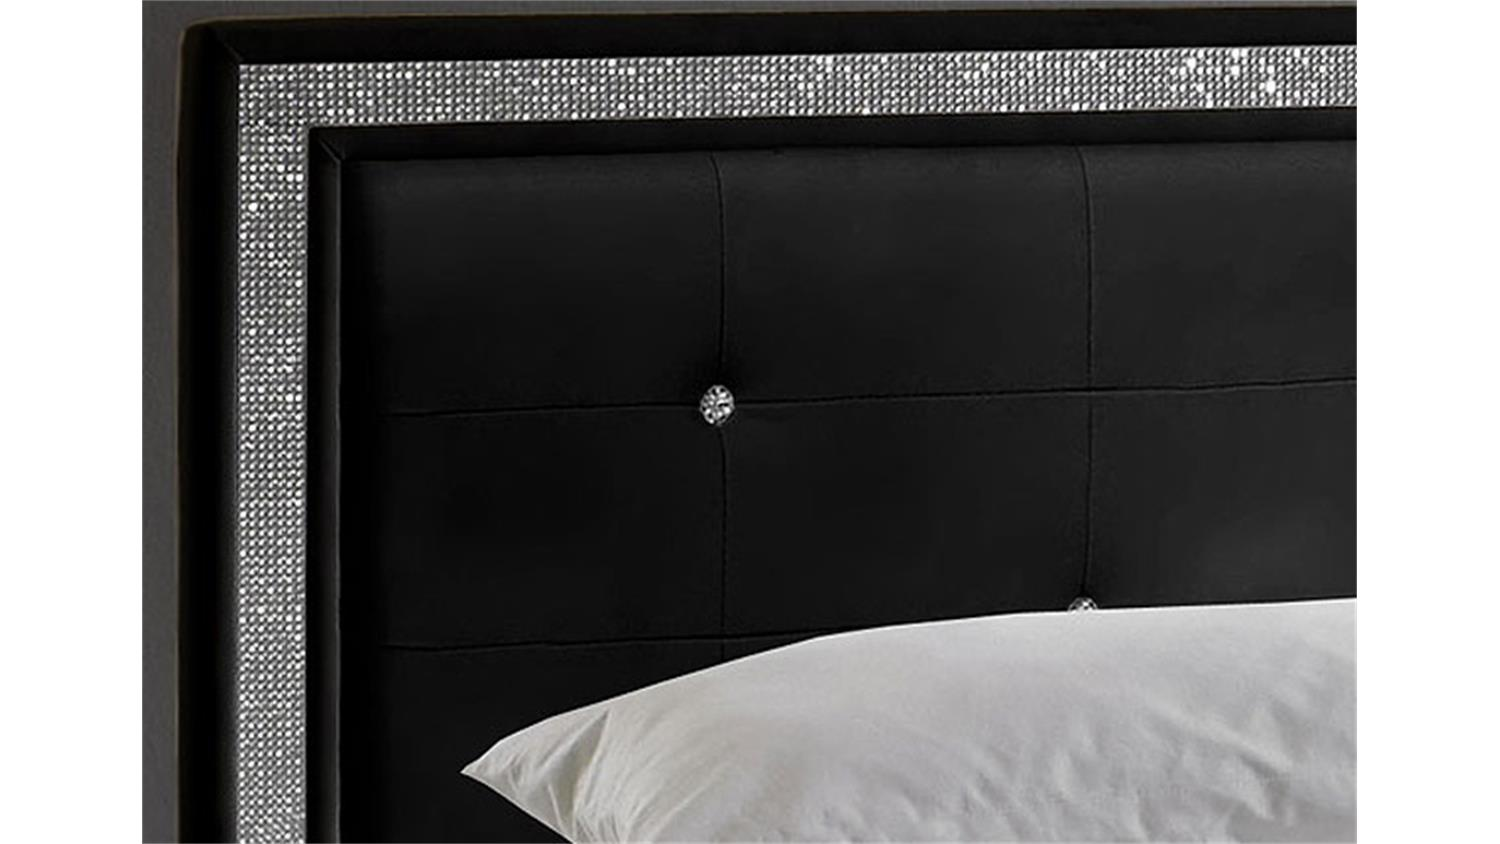 myla polsterbett schwarz mit strass 180x200 cm. Black Bedroom Furniture Sets. Home Design Ideas